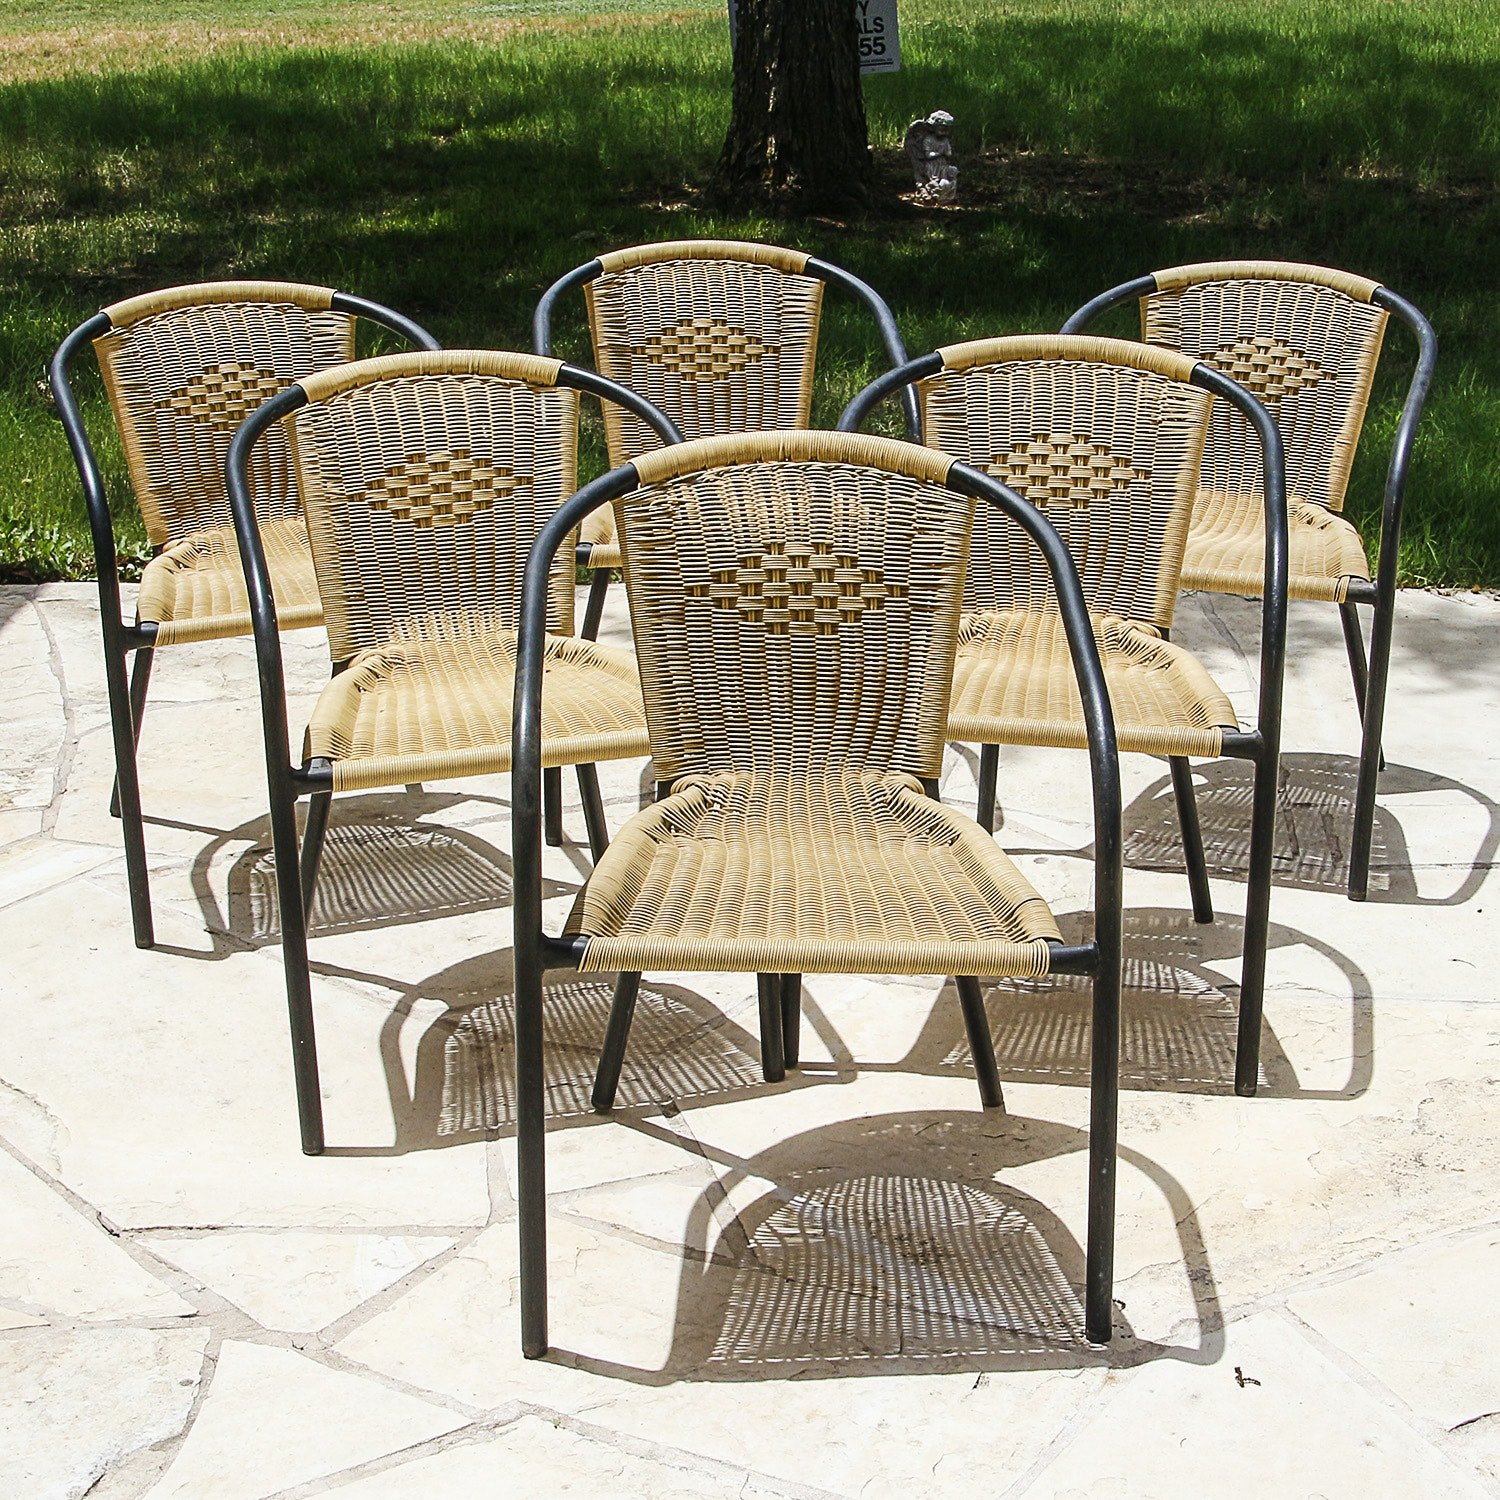 Woven metal furniture Bench Chairish Six Metal And Wicker Woven Plastic Patio Chairs Ebth